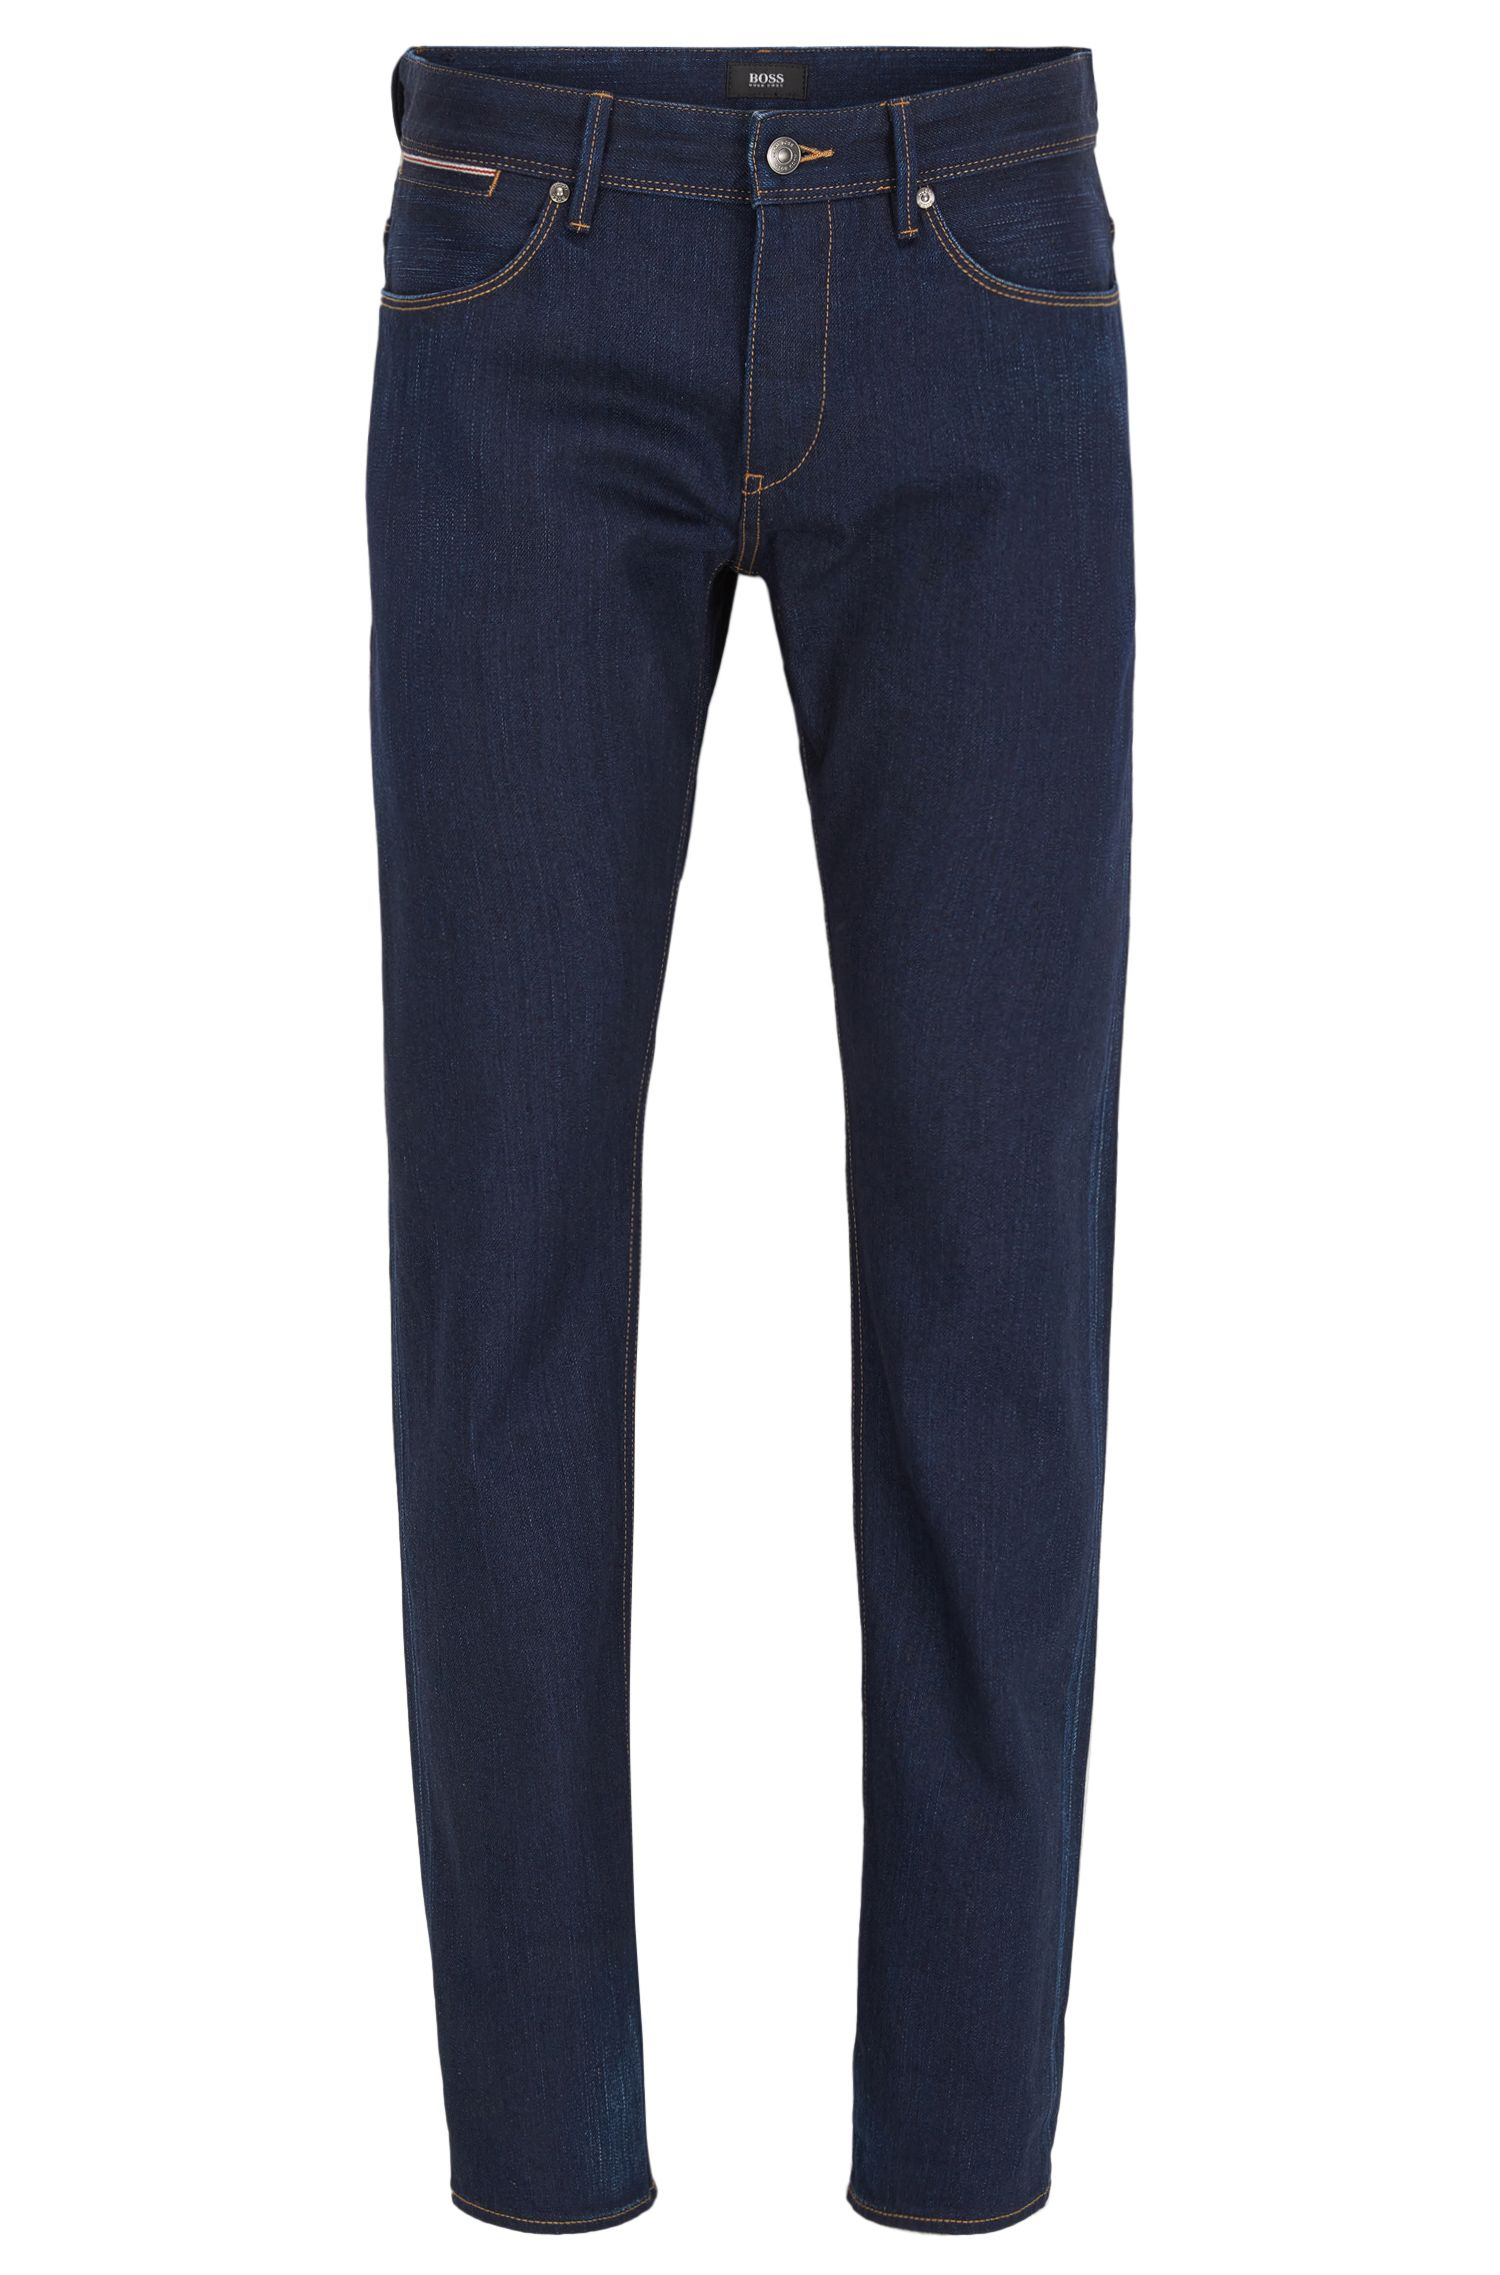 Jeans Slim Fit bleu foncé en denim selvedge